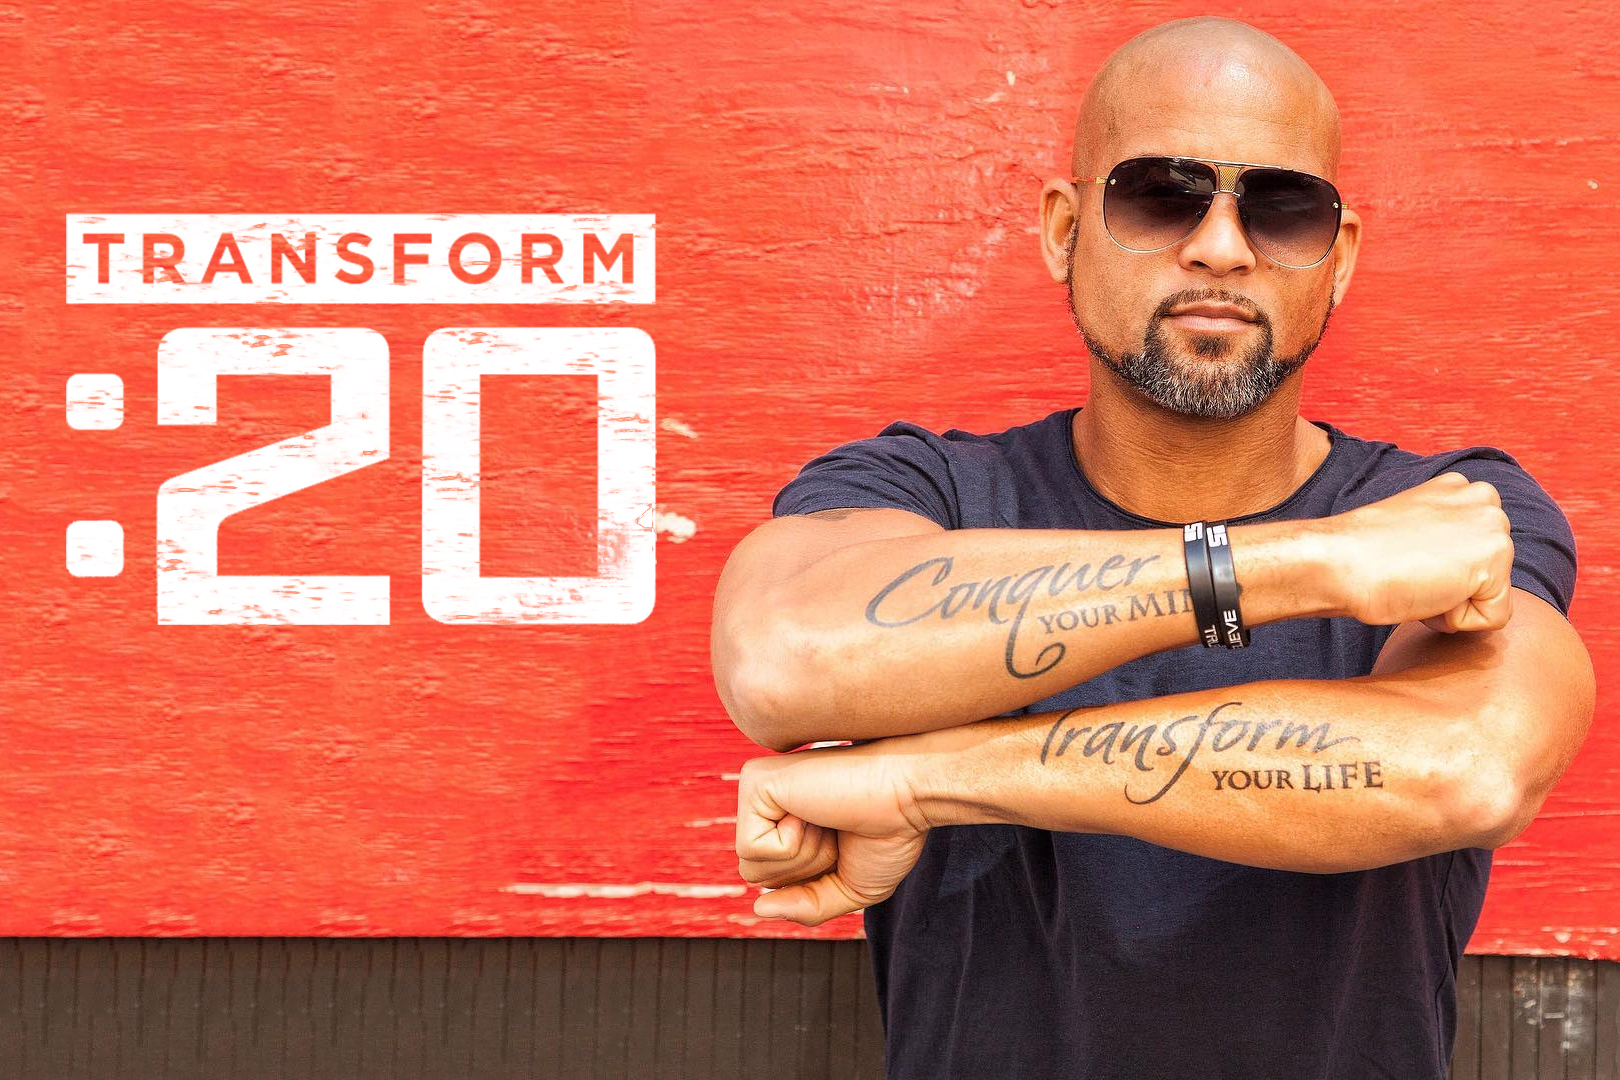 Transform :20 New Beachbody Workout with Shaun T Coming 2019